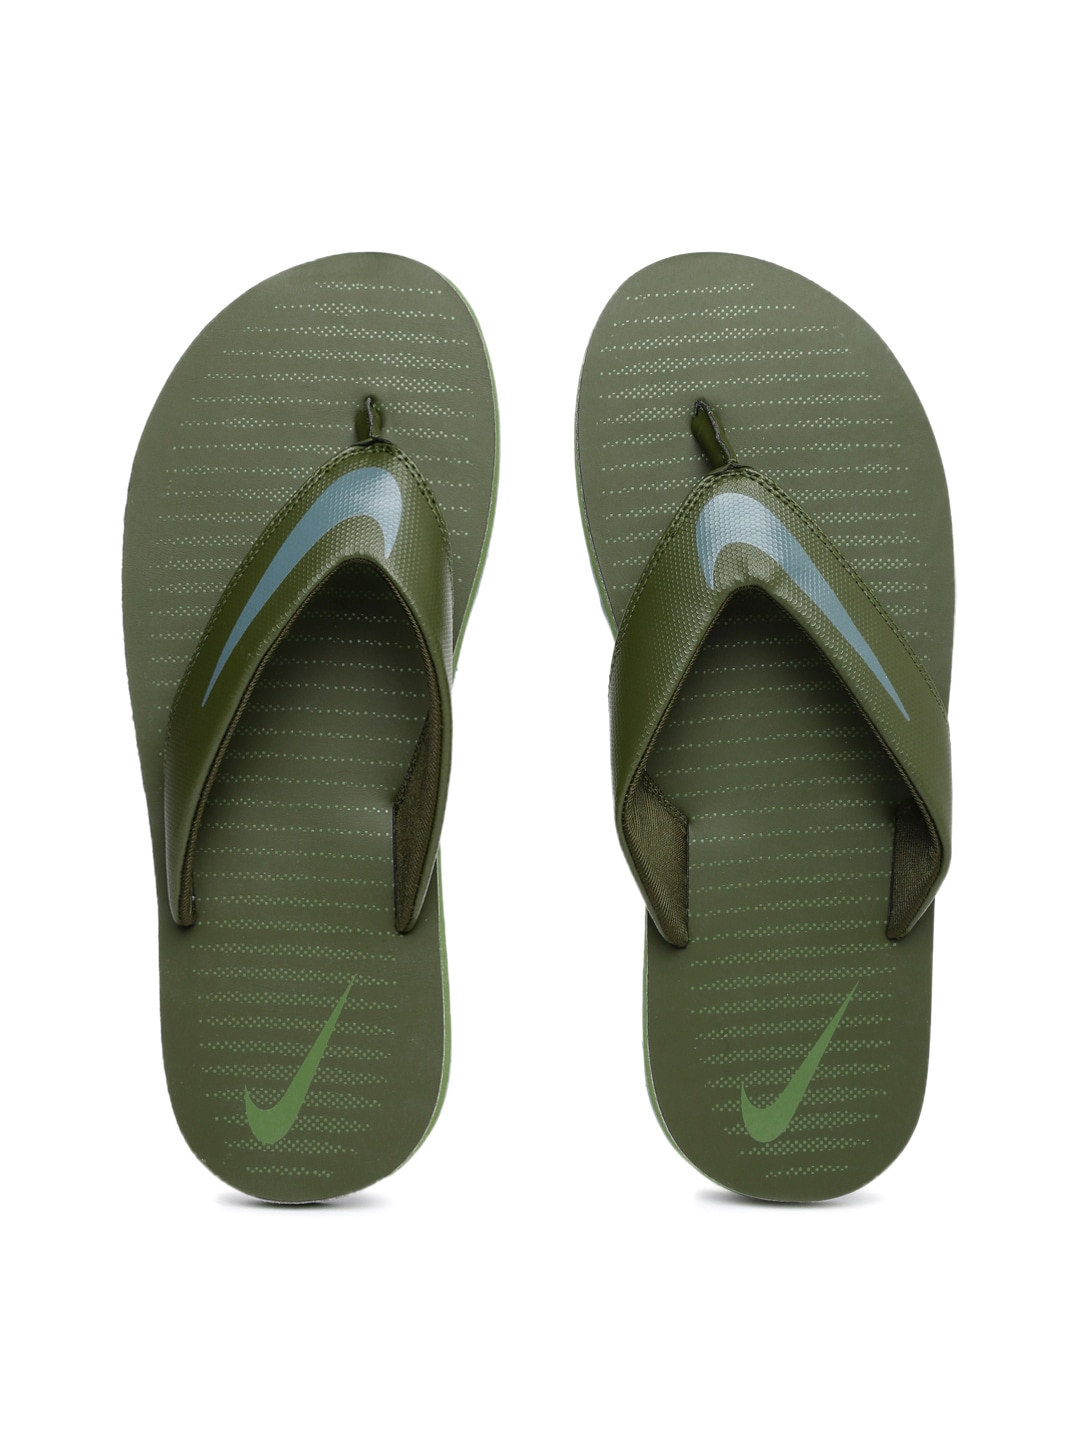 6840be81b950c8 Nike Flip-Flops - Buy Nike Flip-Flops for Men Women Online